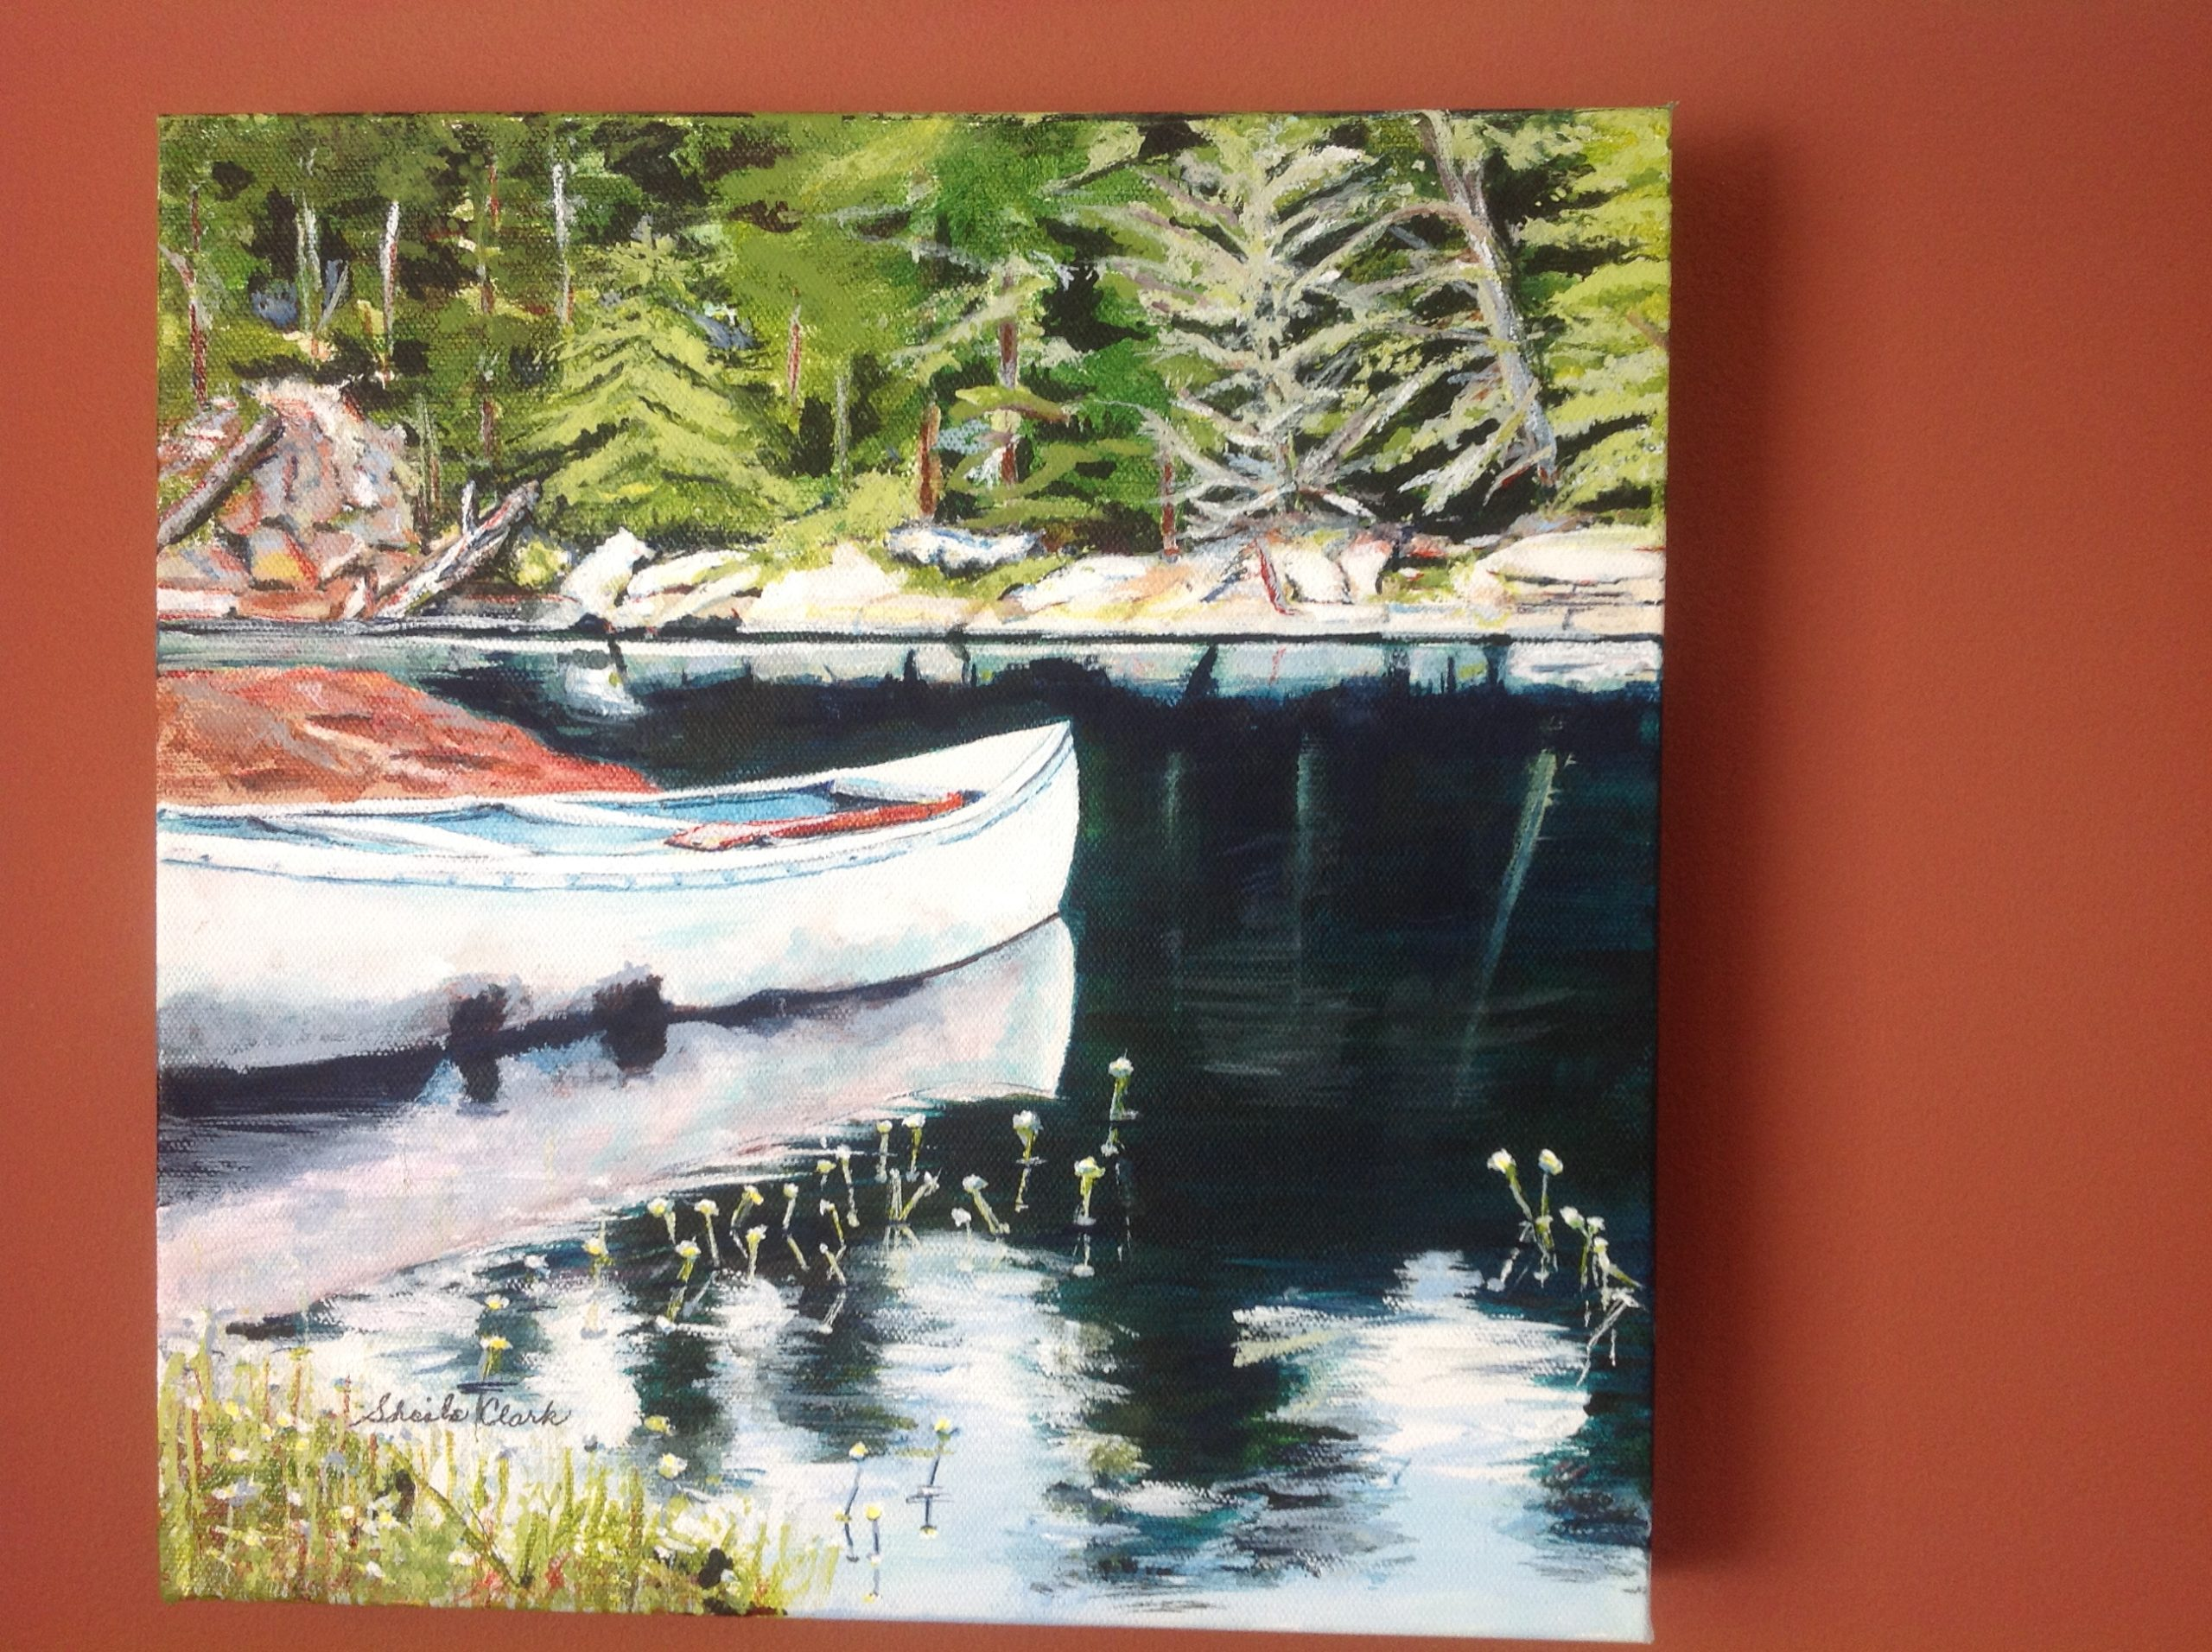 Tranquility. (White canoe) by Sheila R Clark